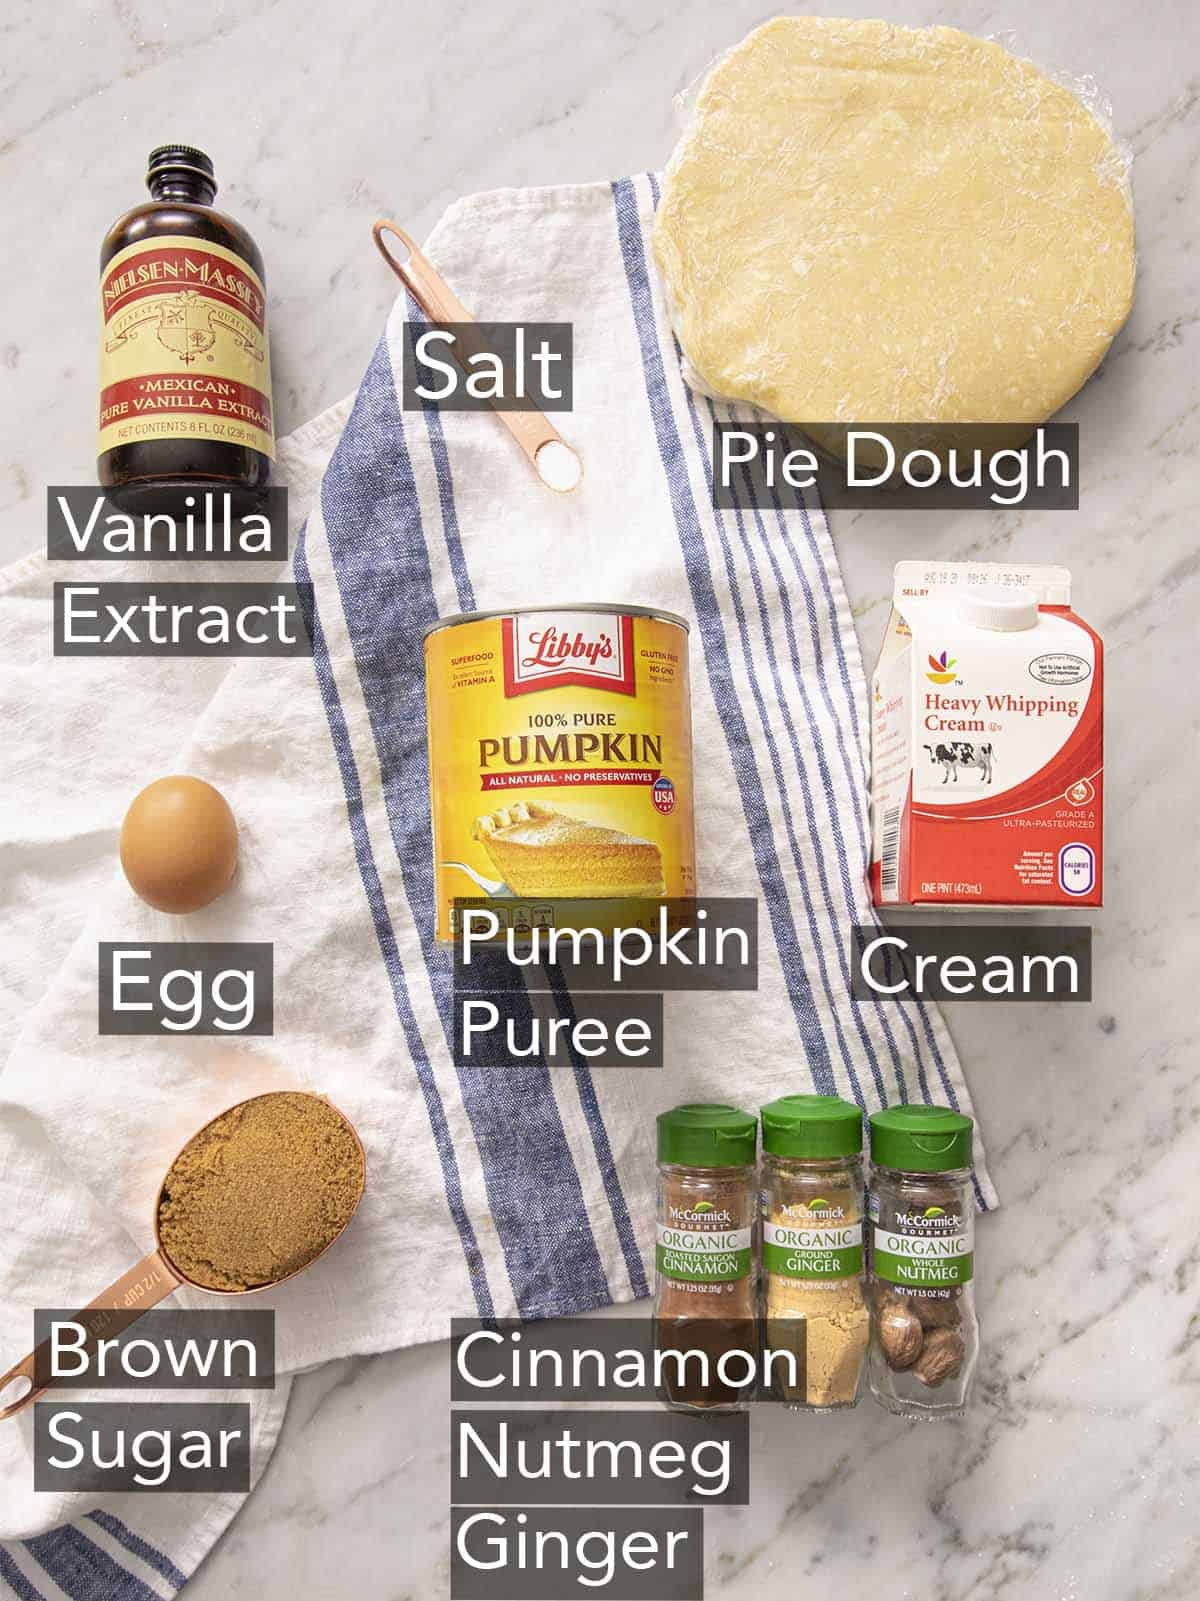 Ingredients for making mini pumpkin pies on a marble counter.